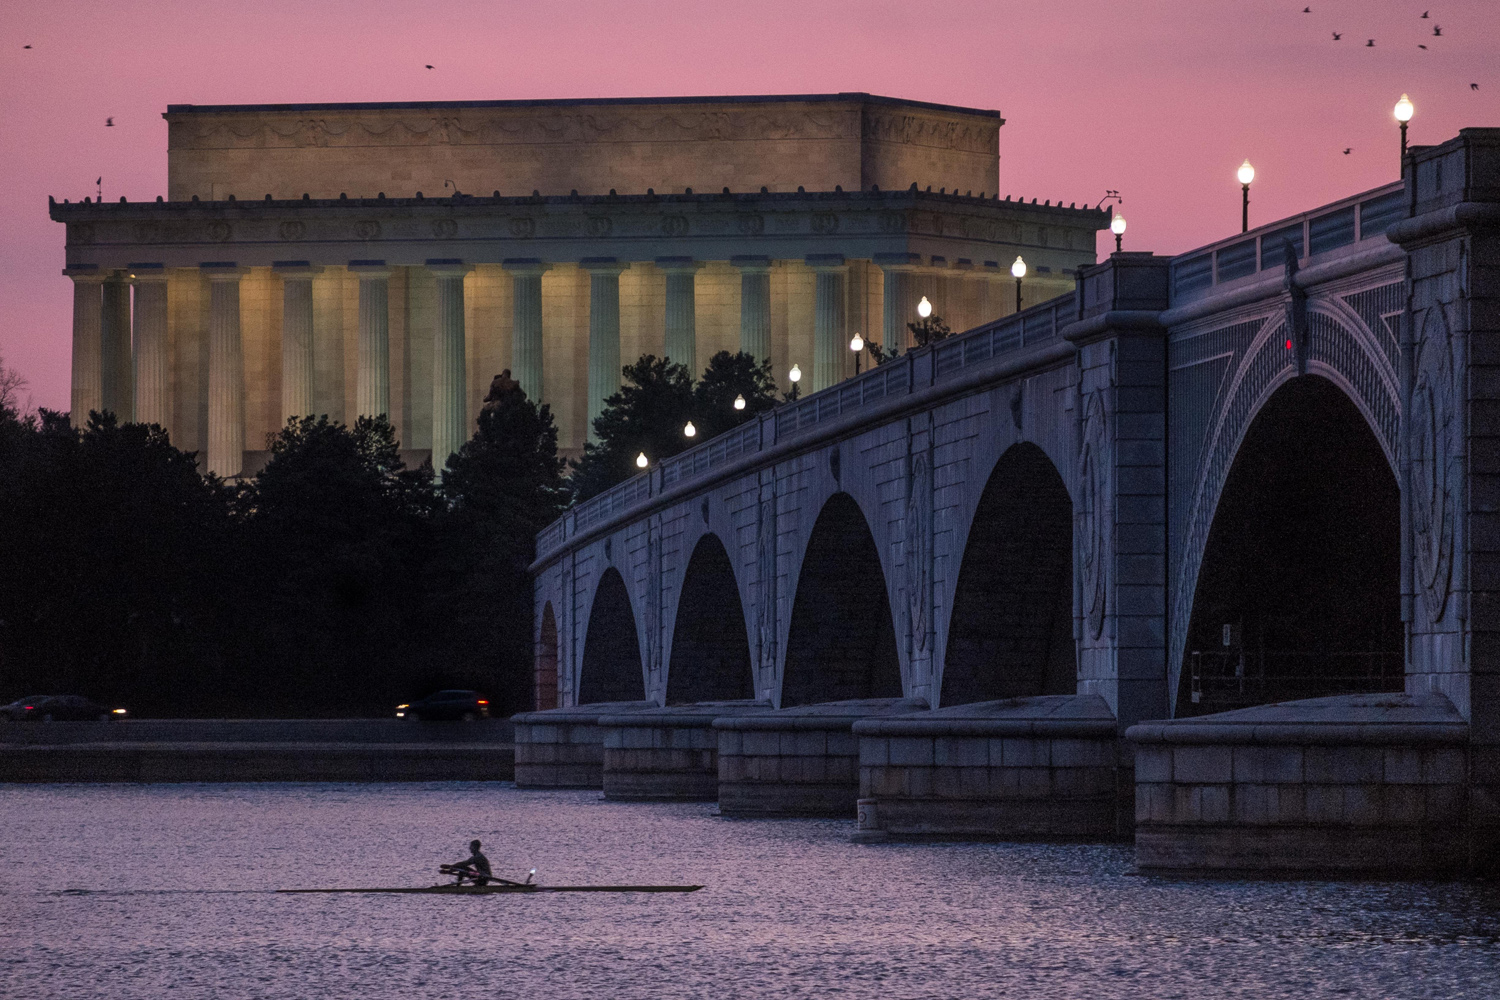 Mar. 21, 2014. A solitary rower skims across the Potomac River past the Lincoln Memorial and under the Memorial Bridge at sunrise in Washington DC.